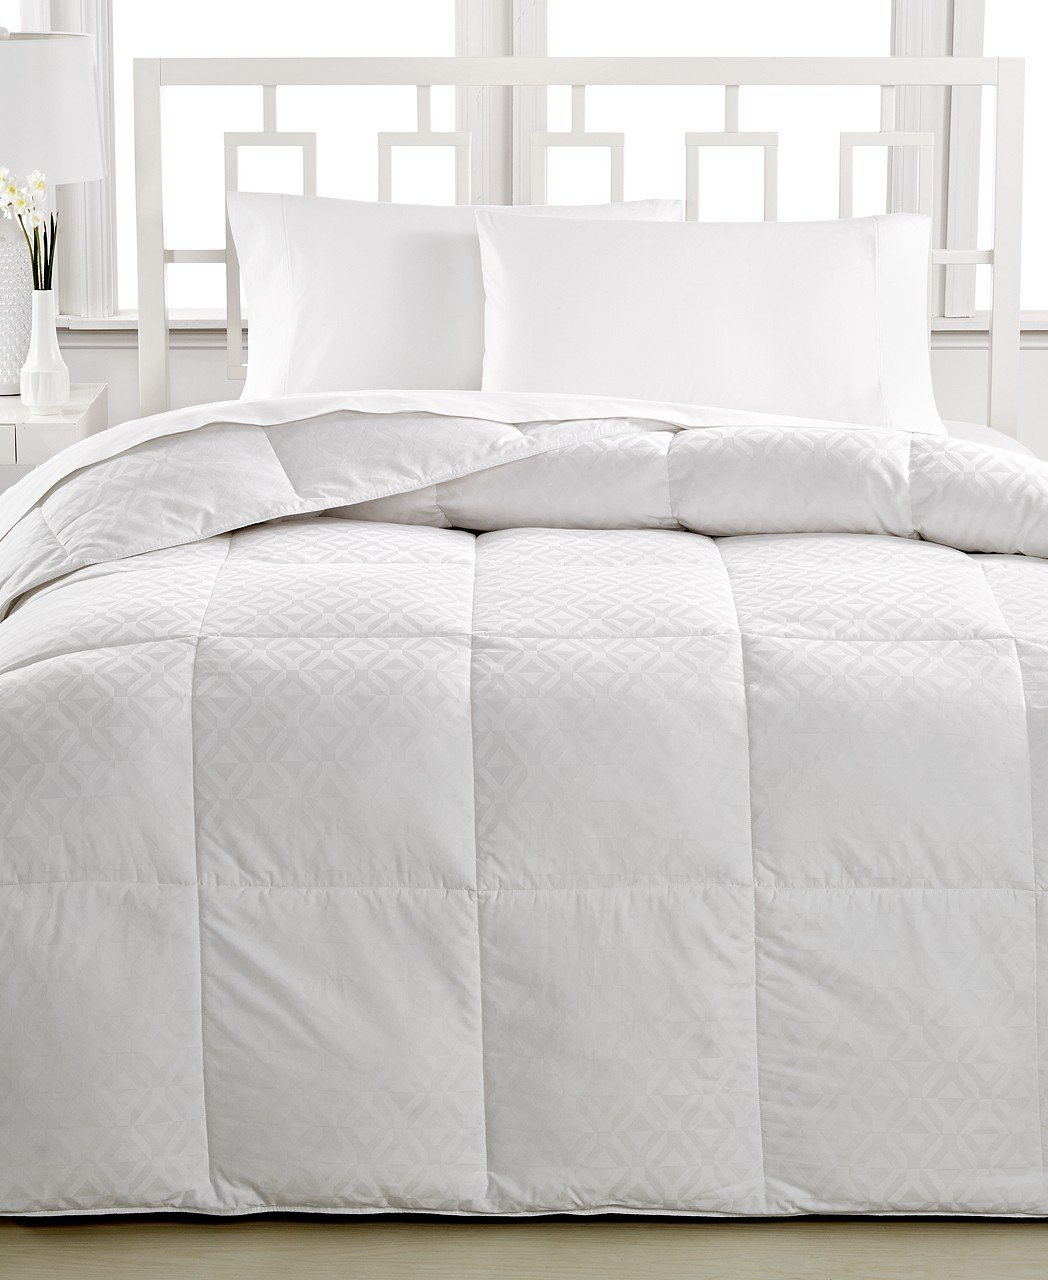 comforter eyelet bedspreads quilt king white queen twin down size nz coverlet xl macys